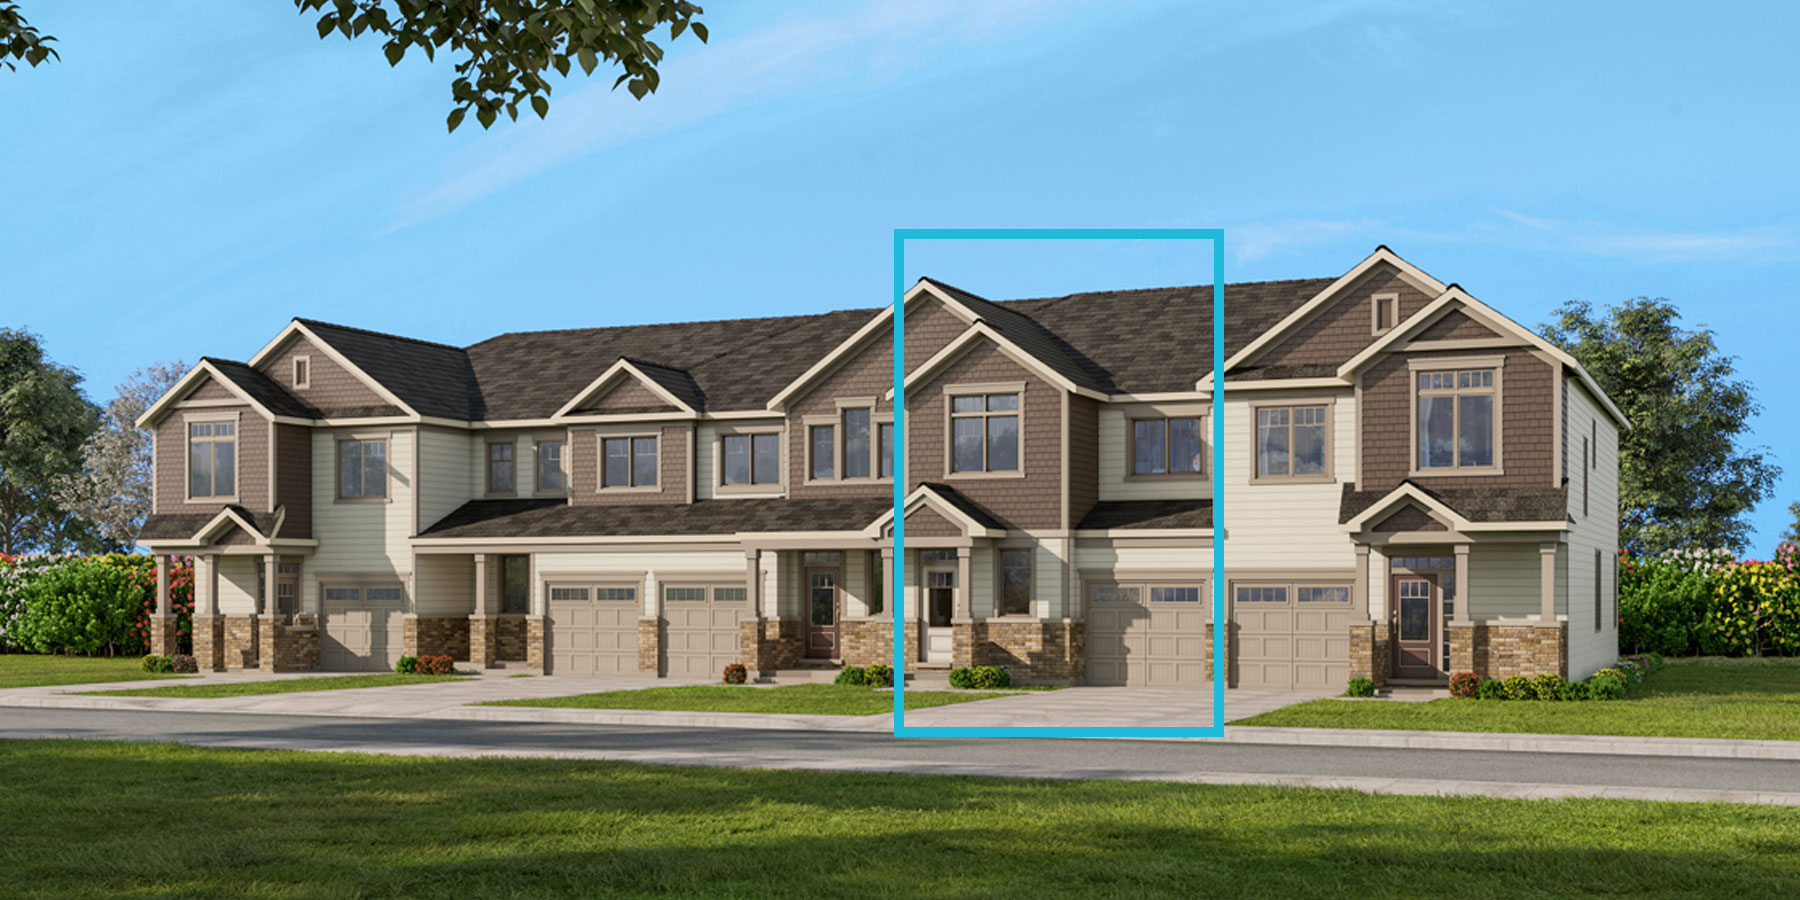 Woodland Corner Plan TownHomes at Connections In Kanata in Kanata Ontario by Mattamy Homes